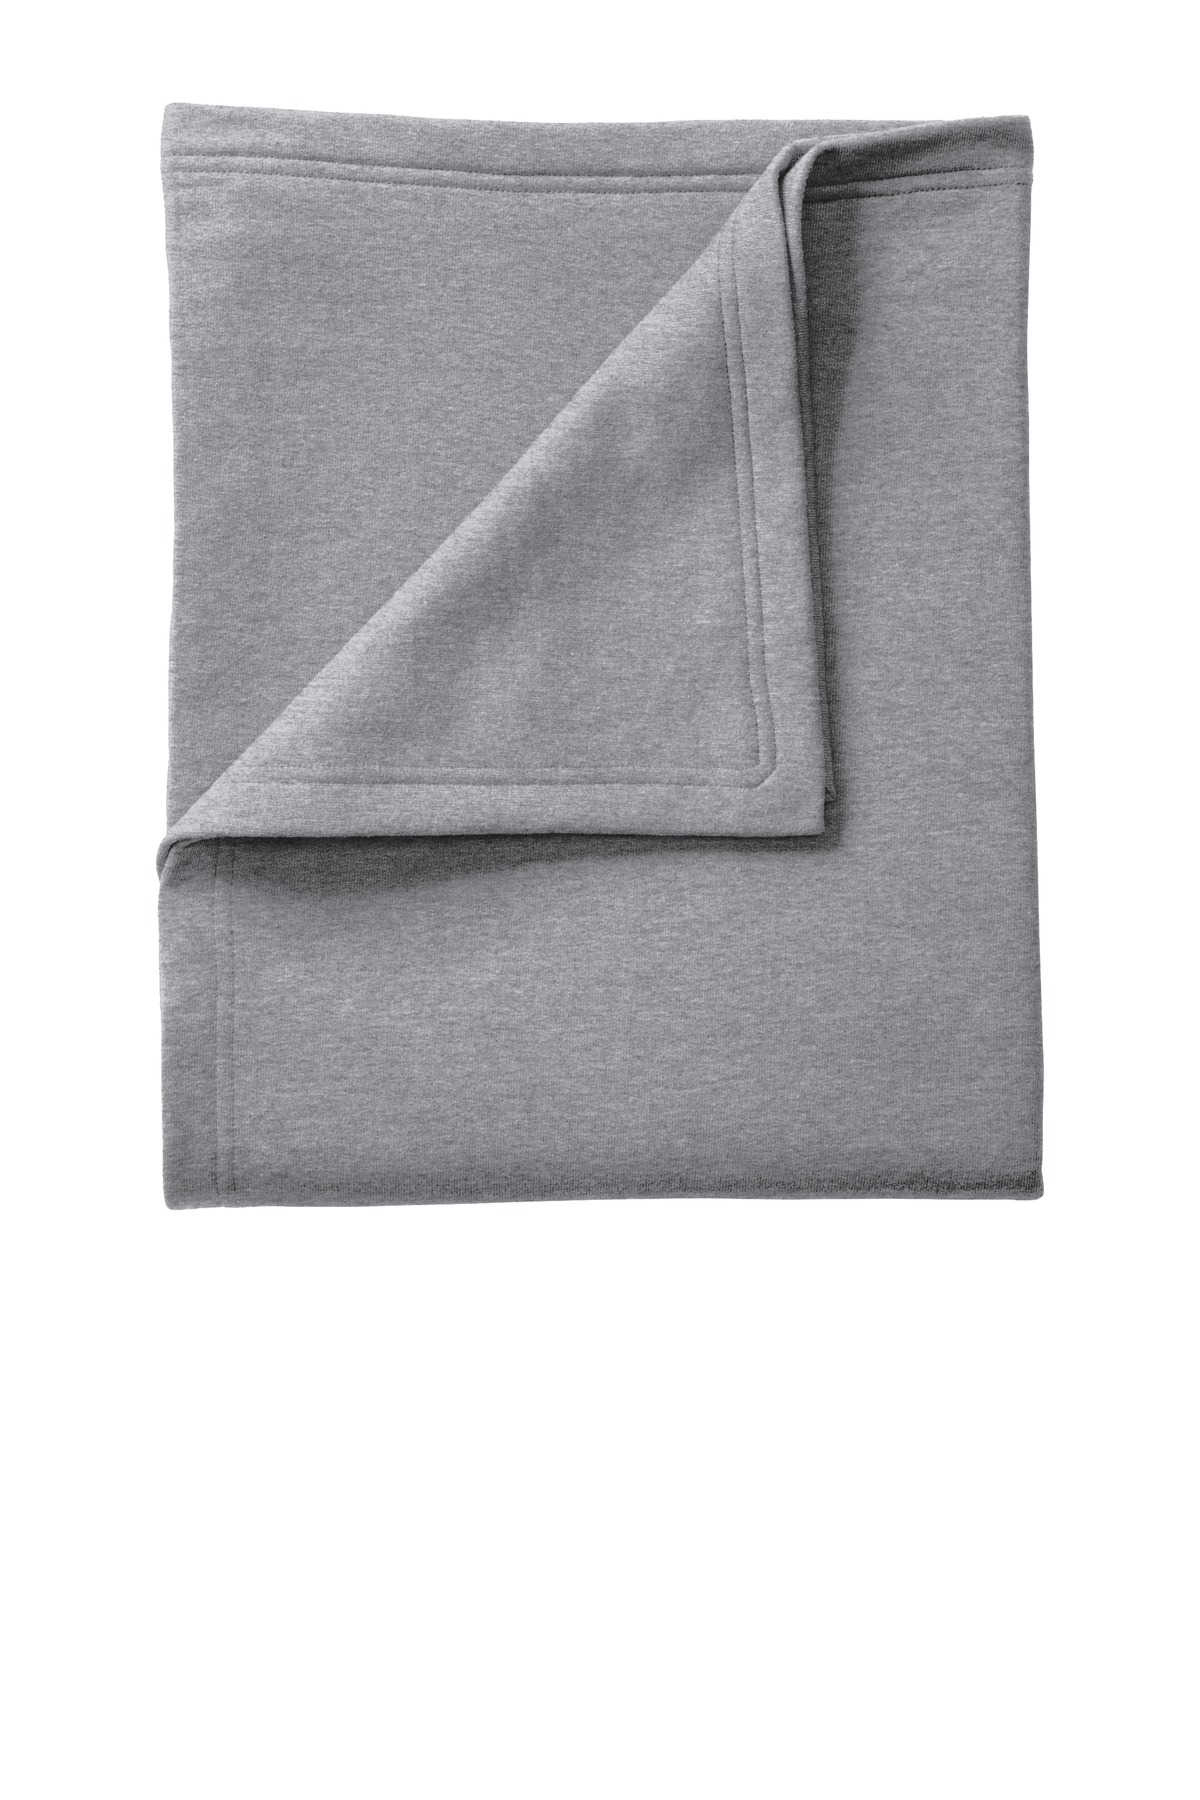 Port & Company ®  Core Fleece Sweatshirt Blanket. BP78 - Athletic Heather